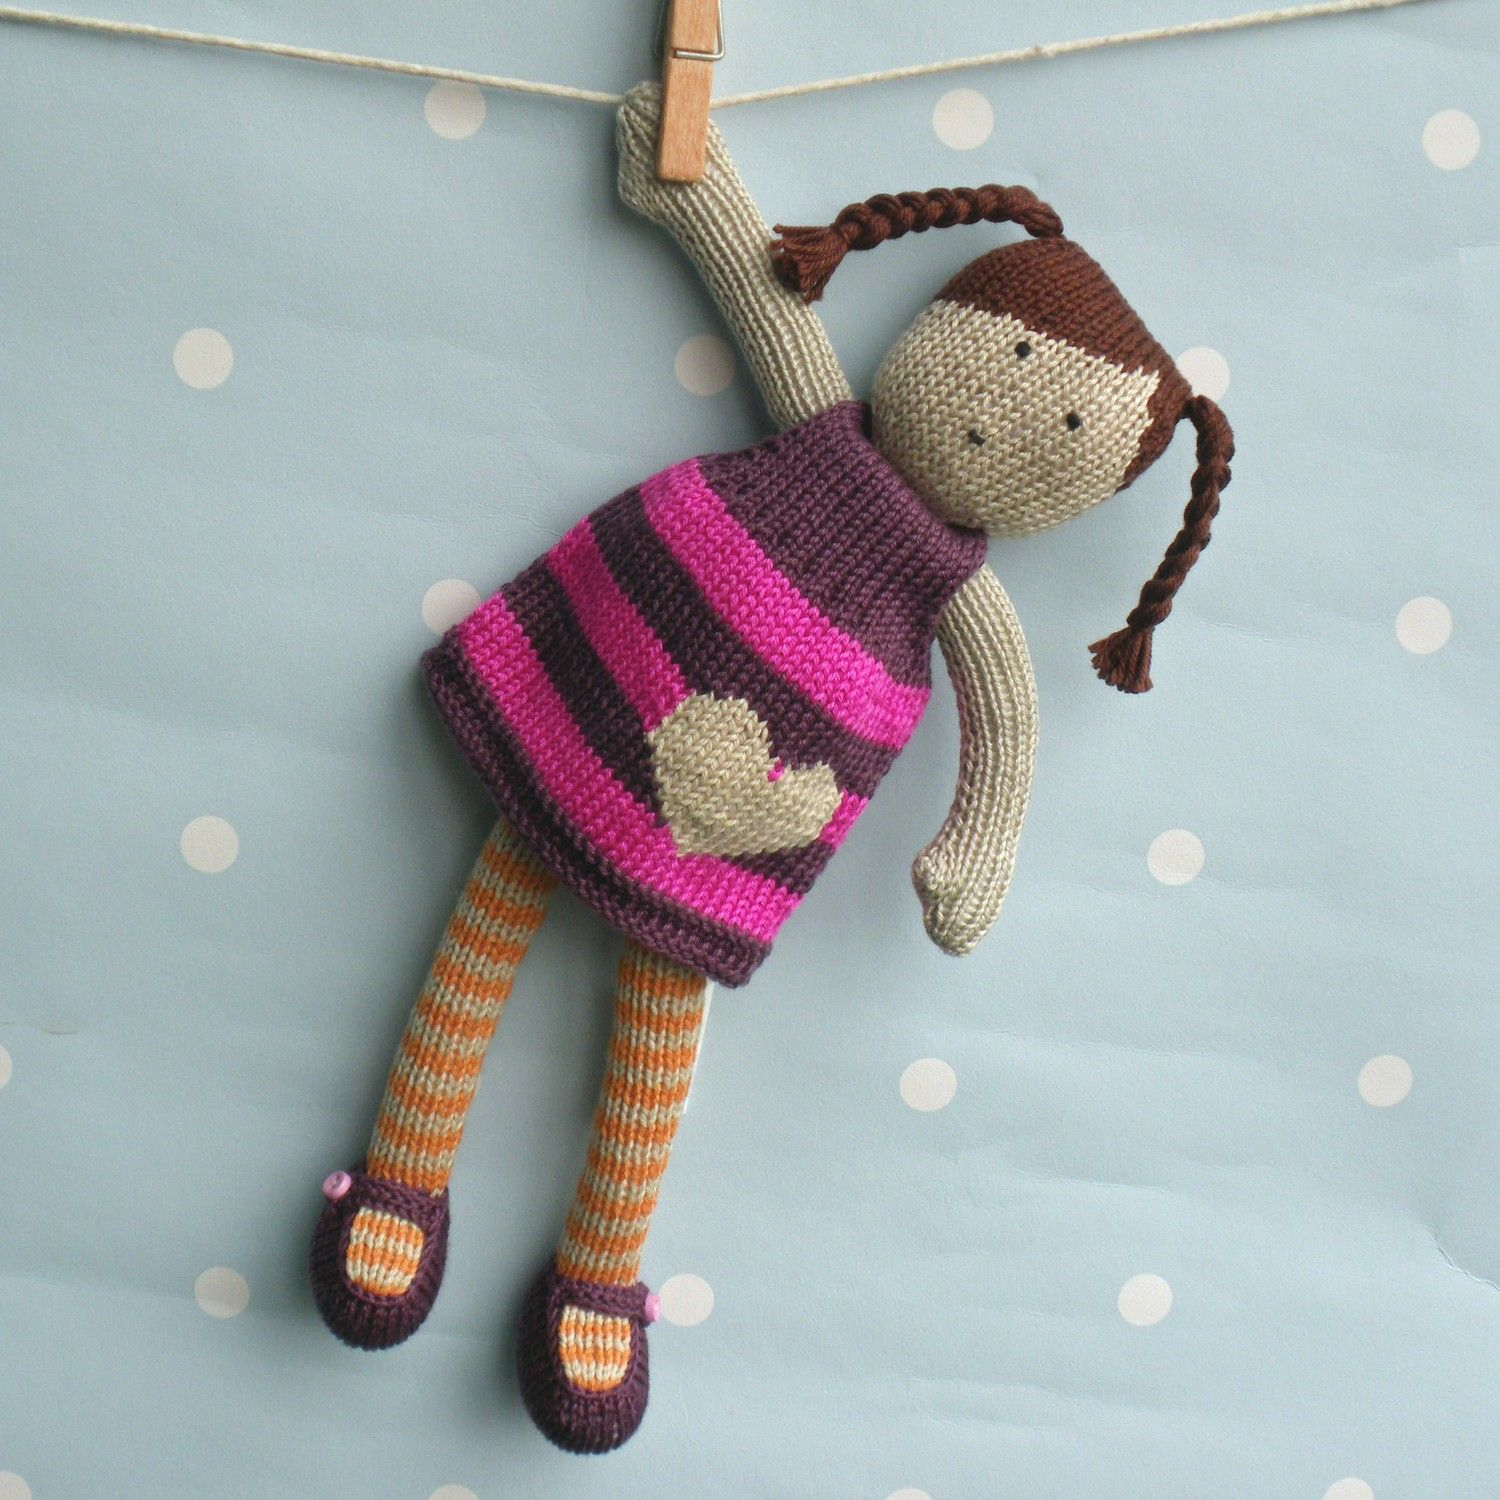 Dolls Patterns Knitting : Issy - Hand Knitted Doll Dolls, Etsy and Crochet